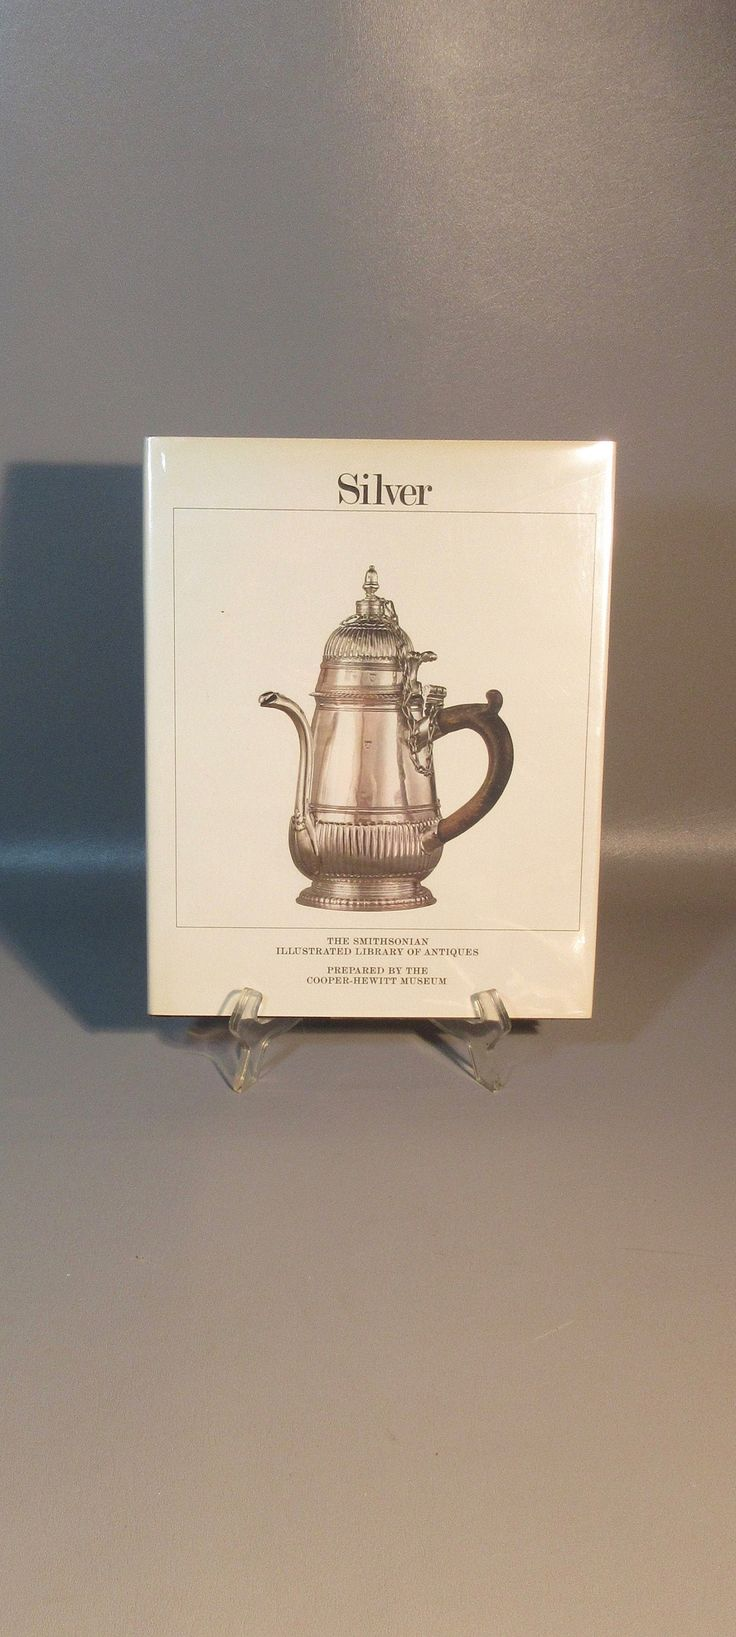 First edition book silver the smithsonian illustrated